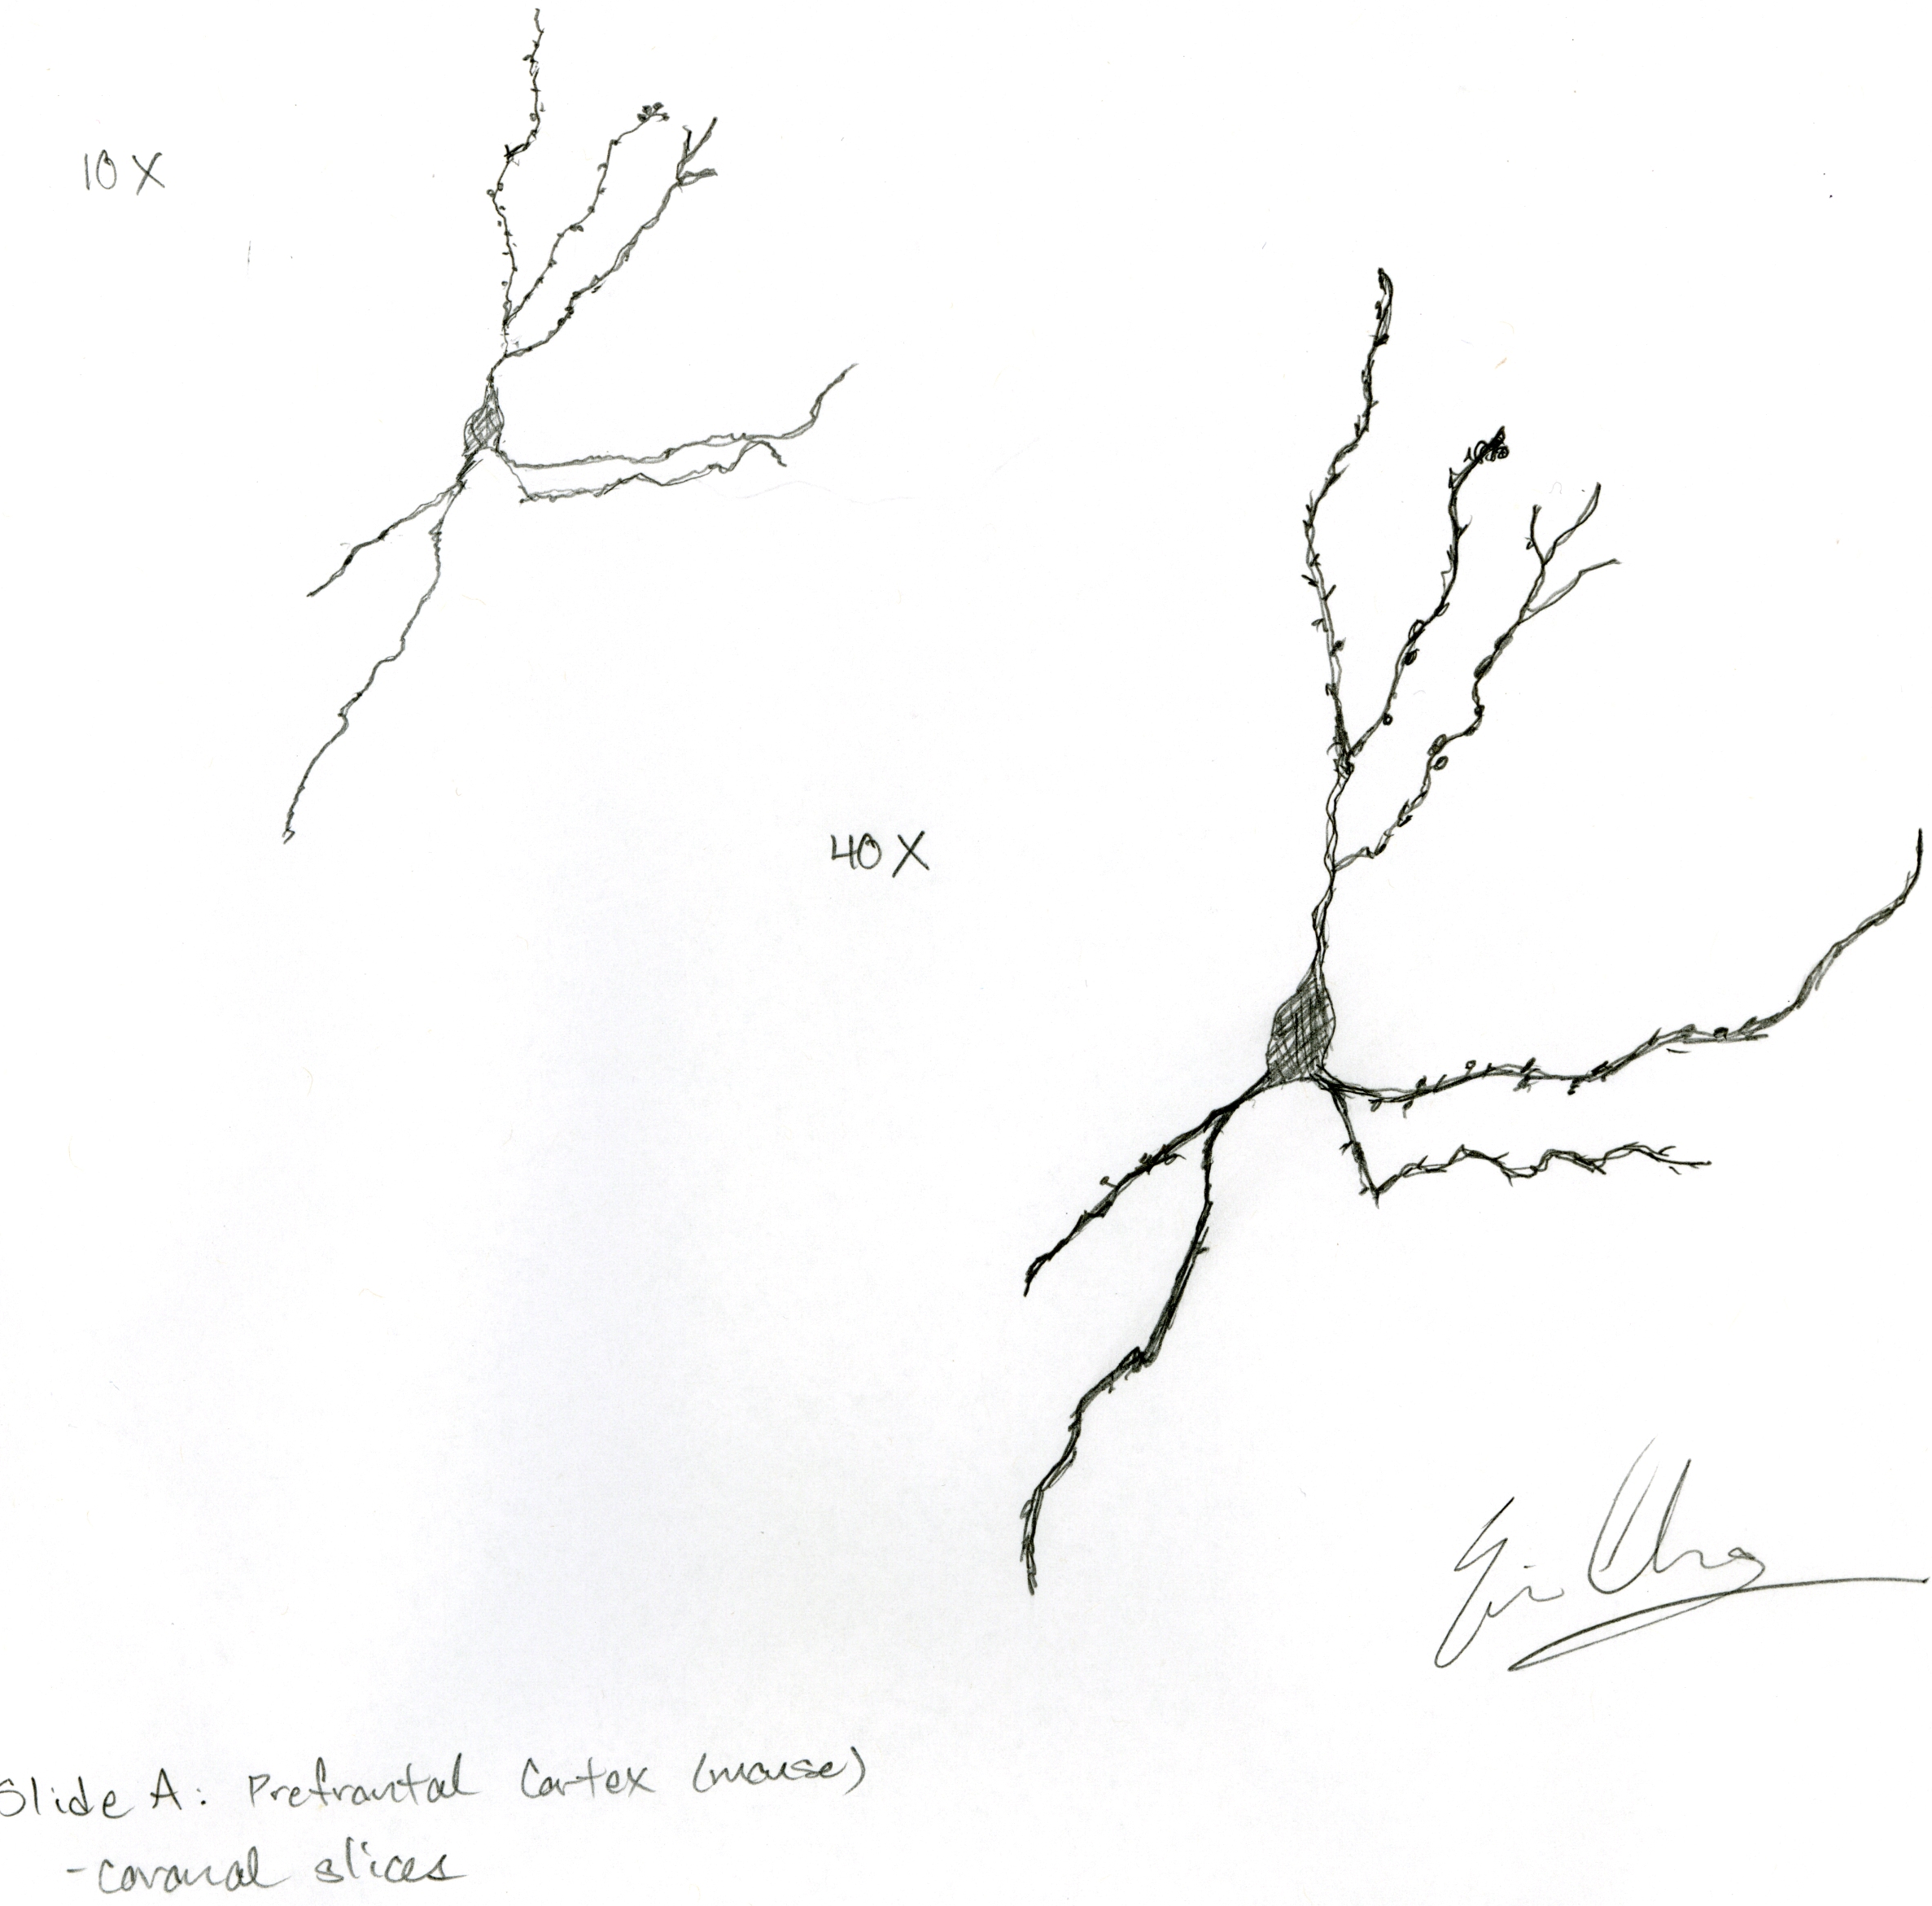 Brain Axons Dendrites Their Axons And Dendrites